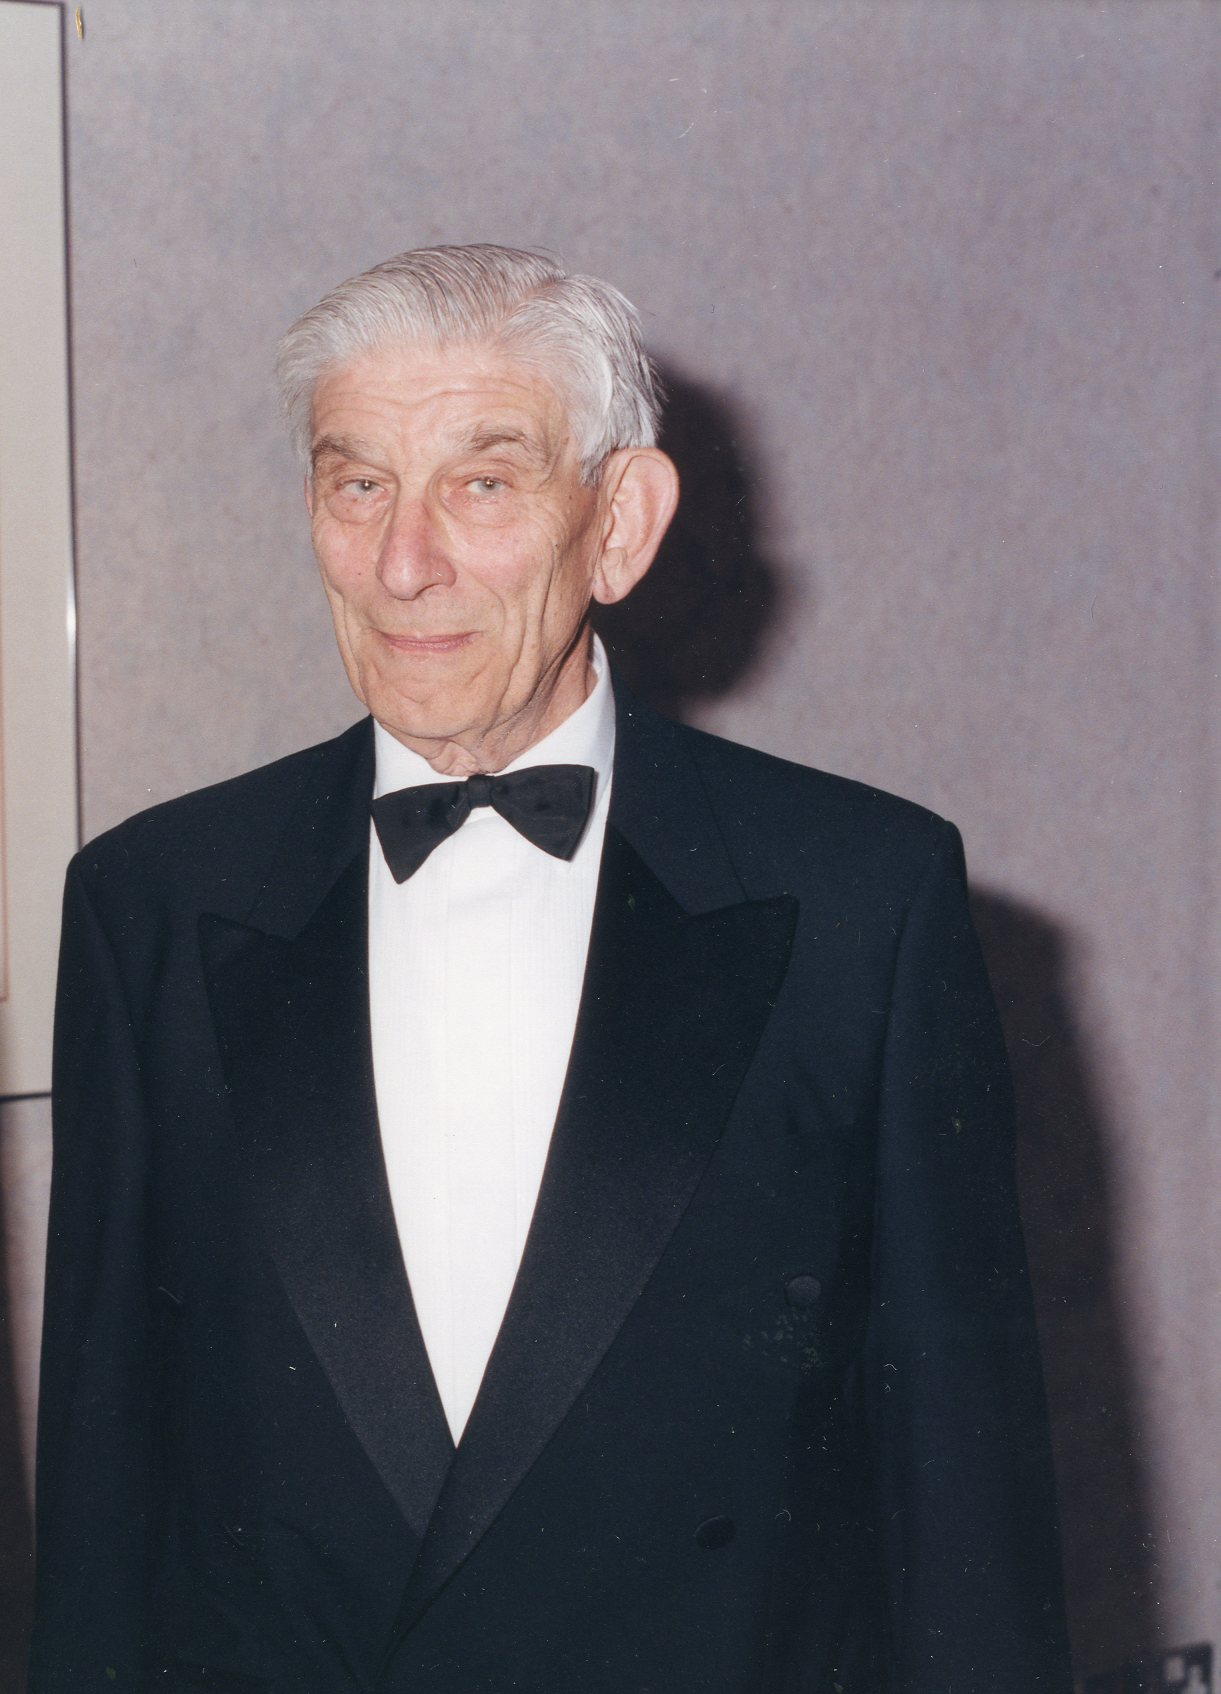 Peter Trier at his Farewell Dinner at Brunel University, 1999 © Brunel University